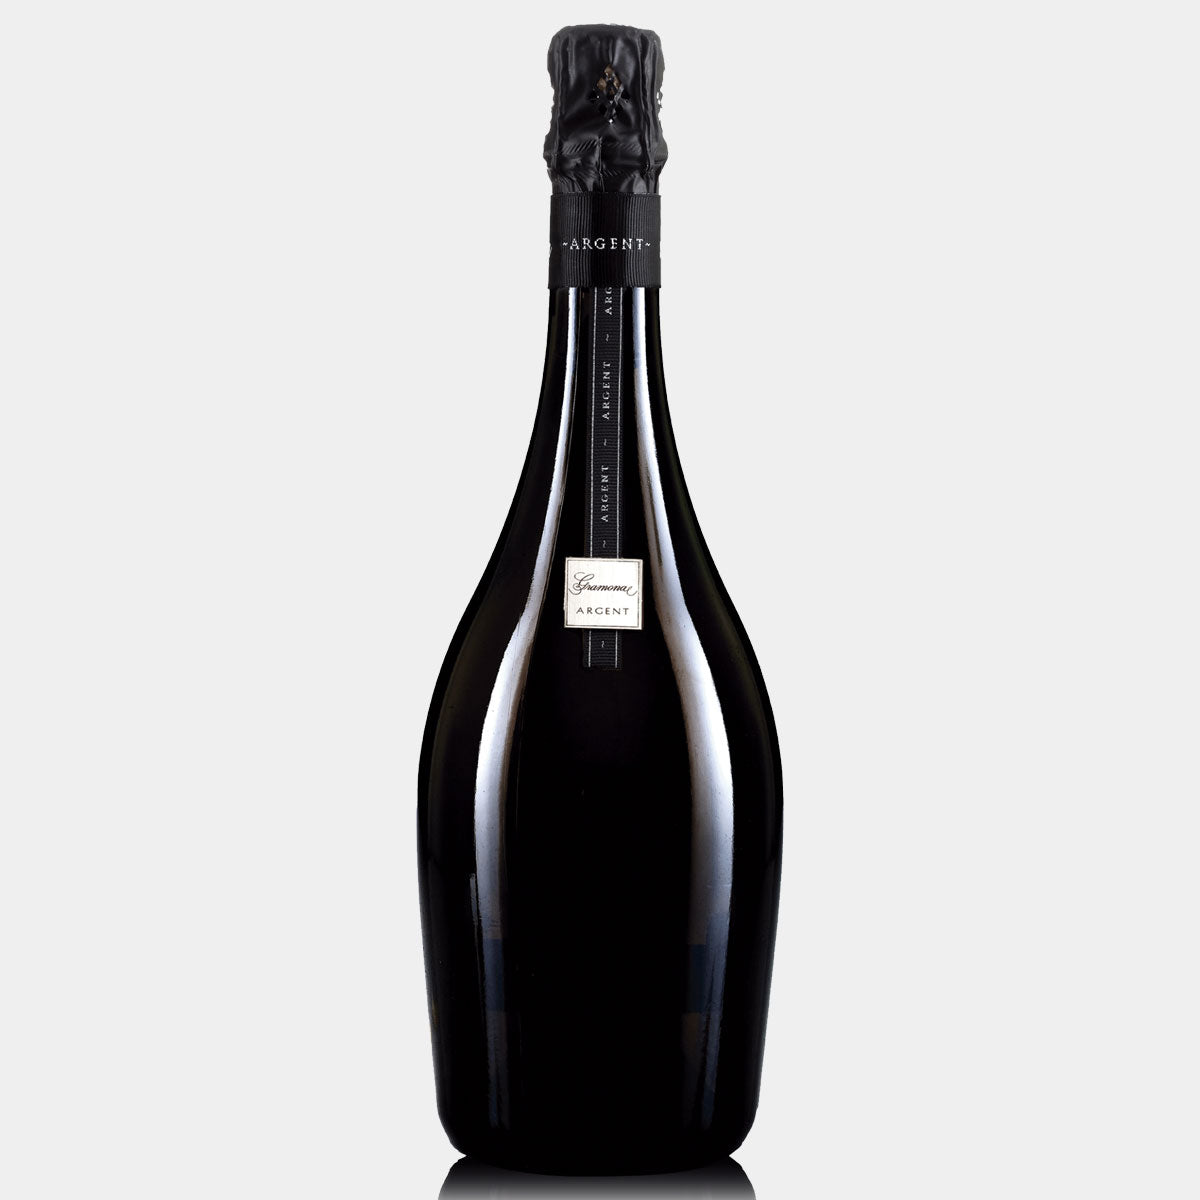 Gramona Argent Blanc Brut - Wines and Copas Barcelona